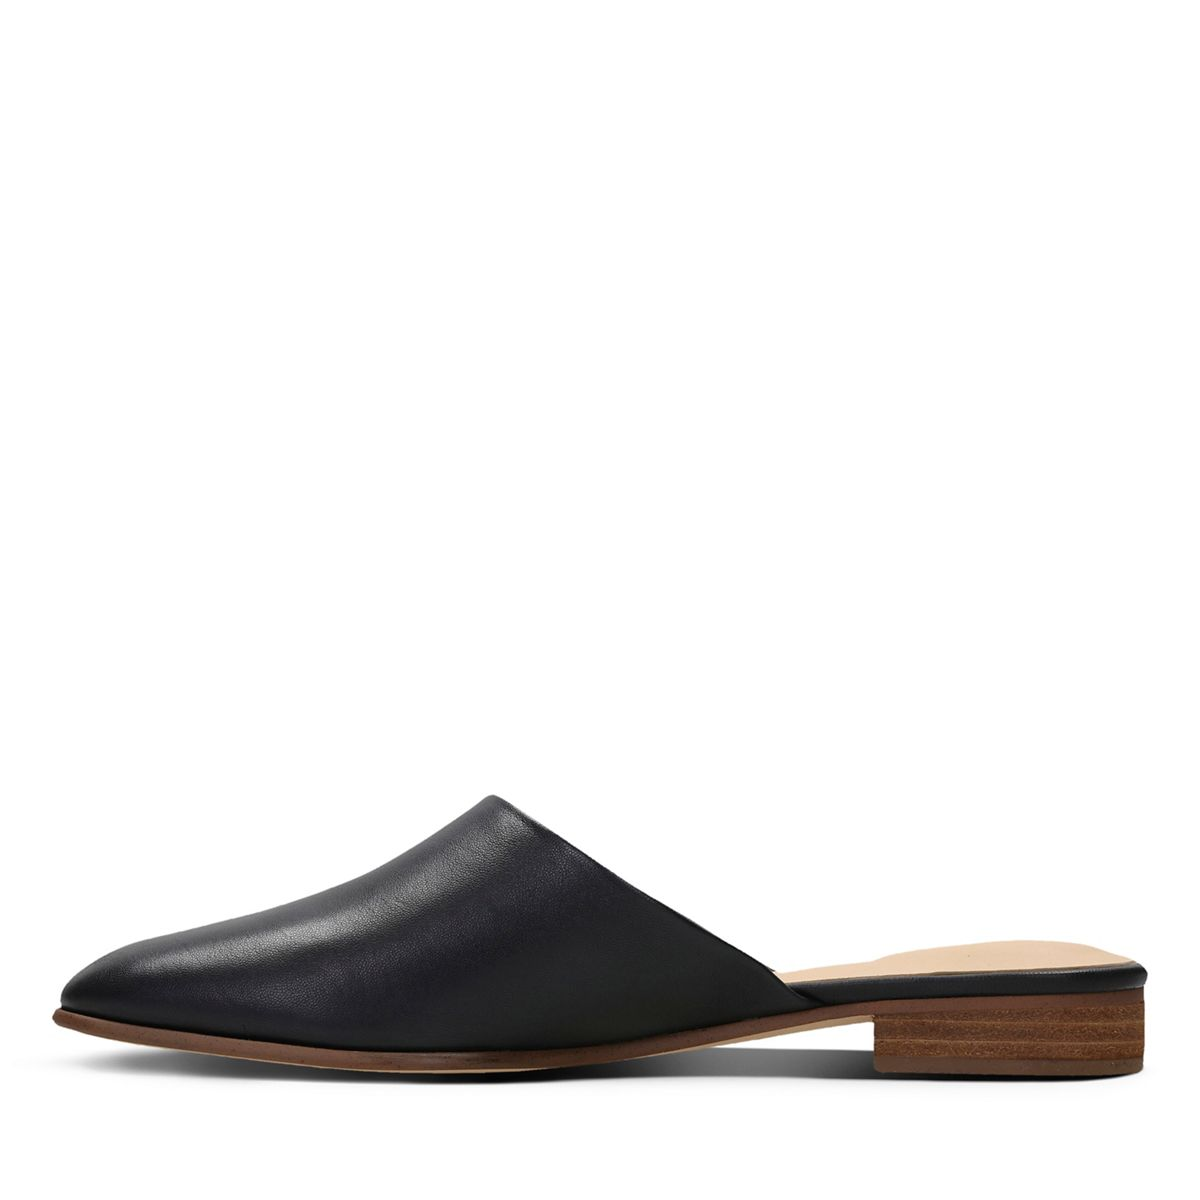 Clarks Pure Blush Leather Shoes in Black